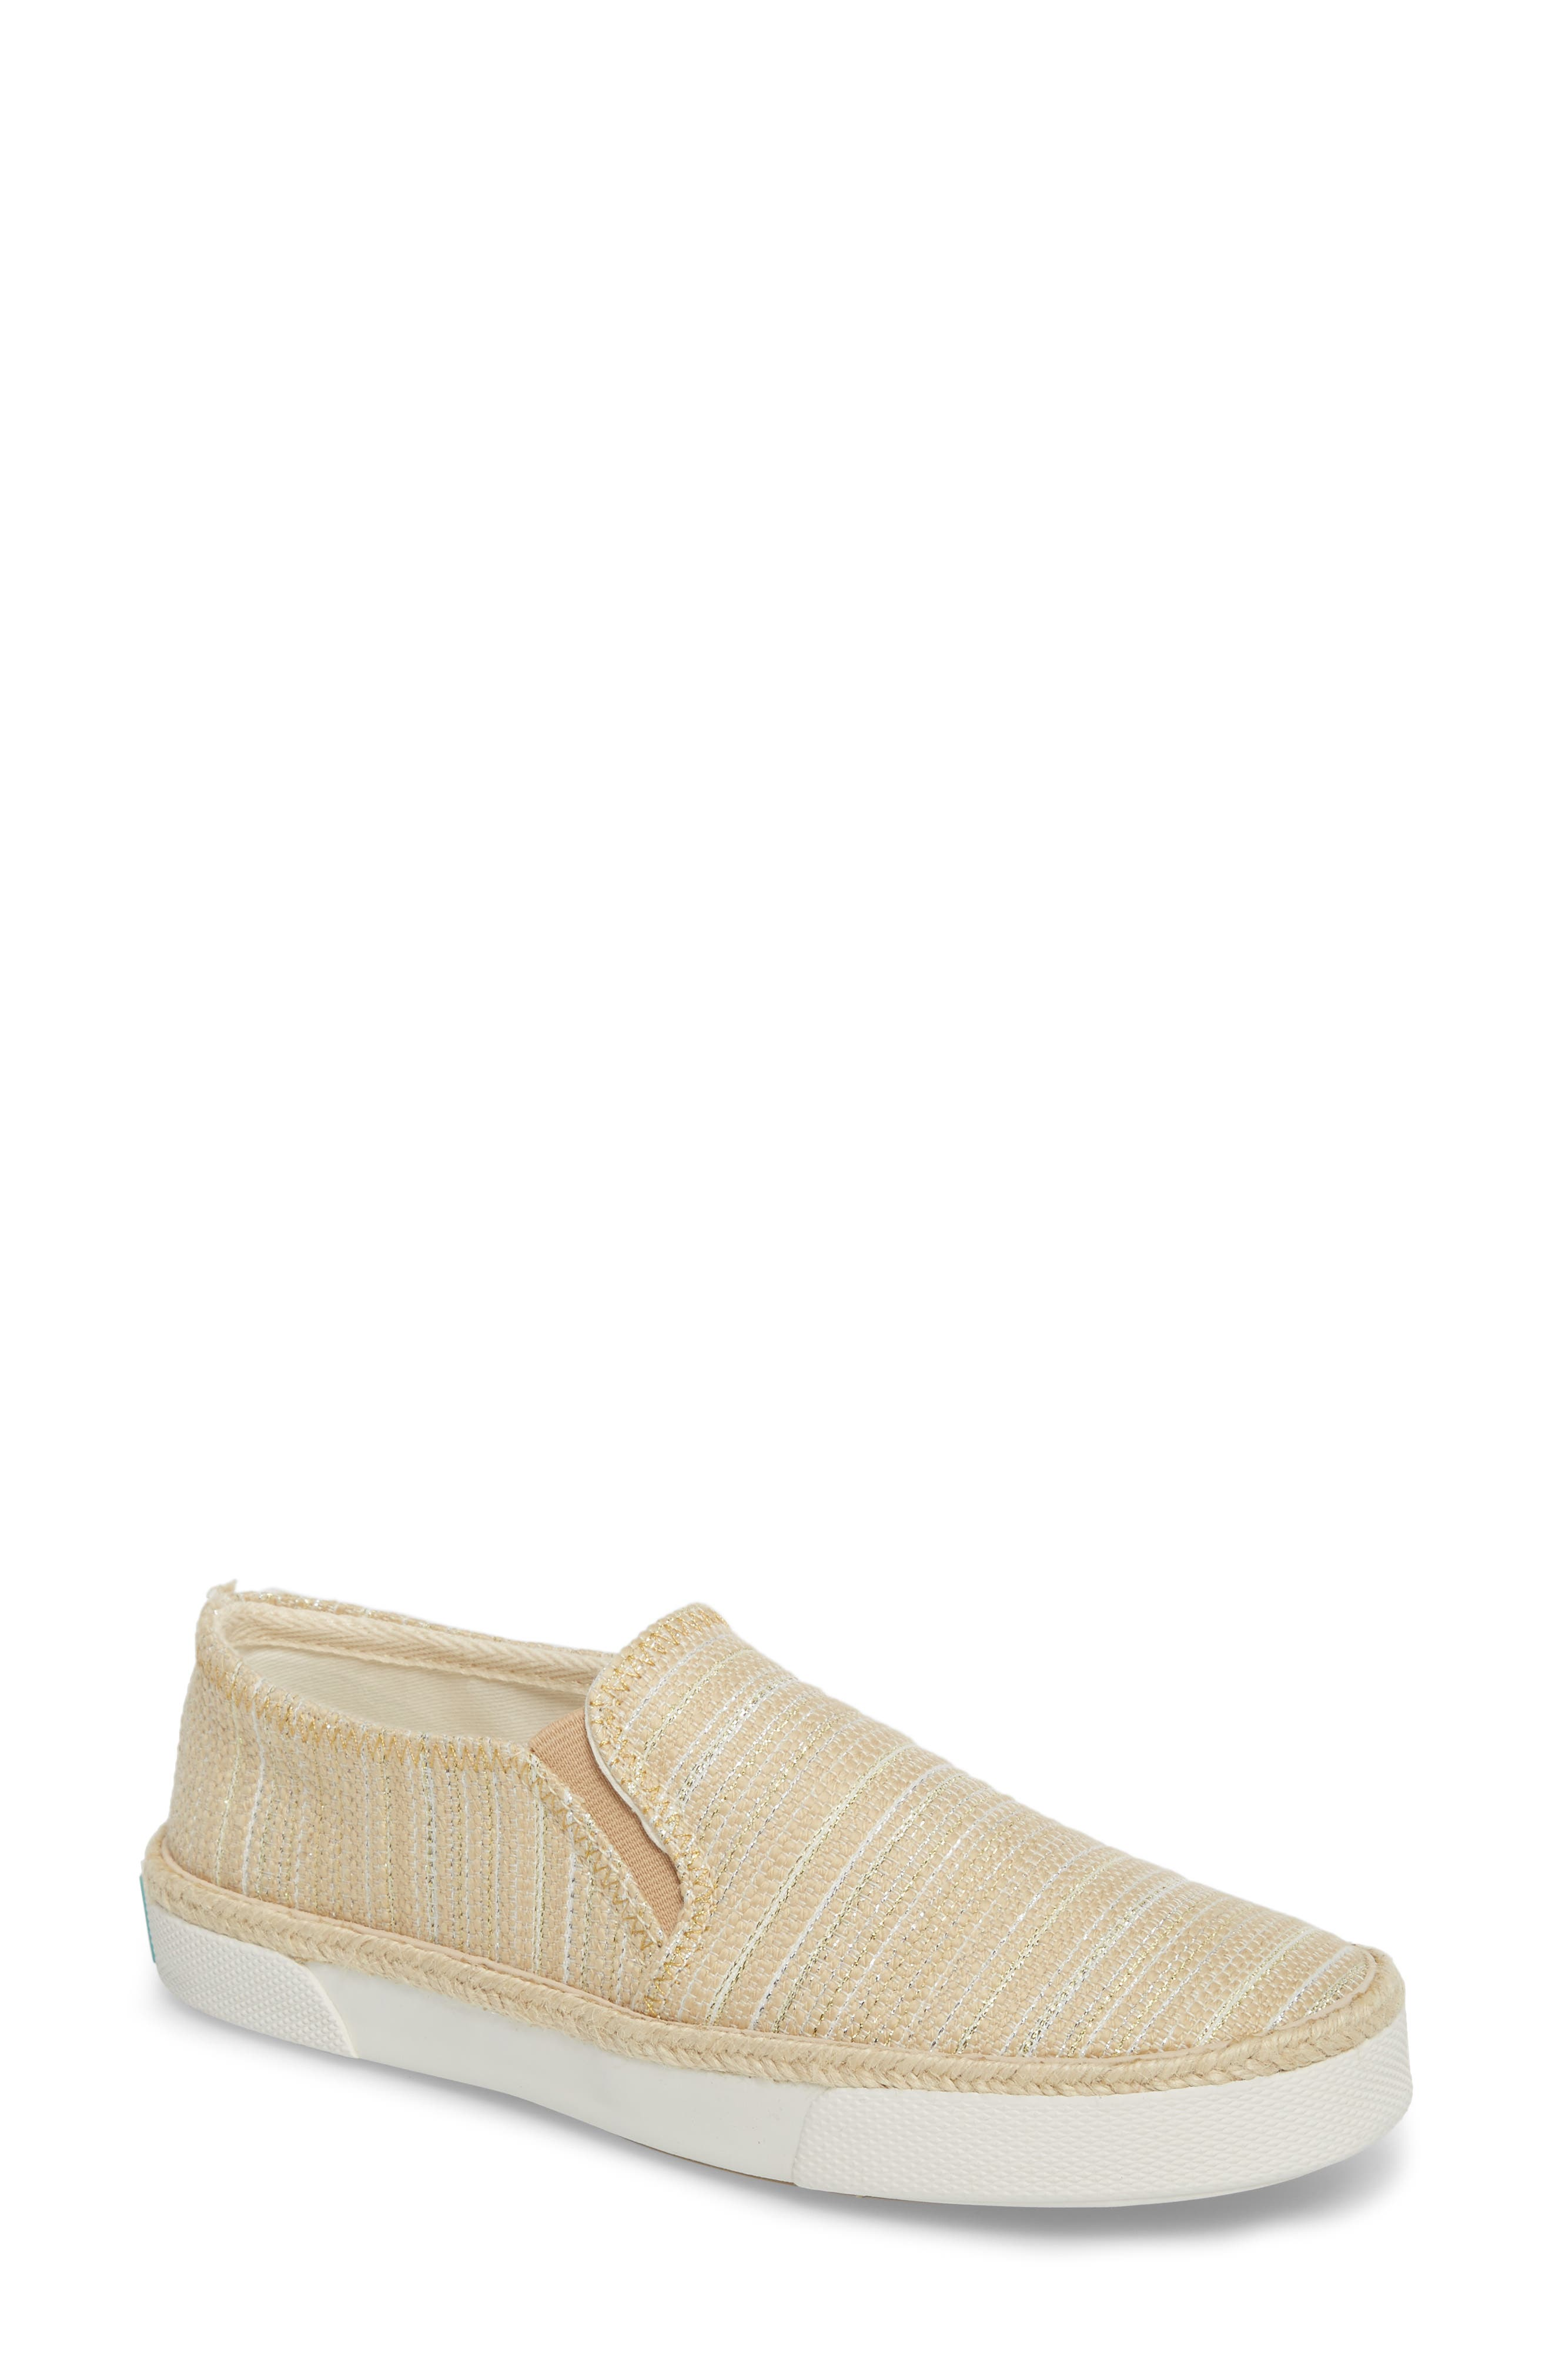 Tucker Slip-On Sneaker,                             Main thumbnail 1, color,                             Tan